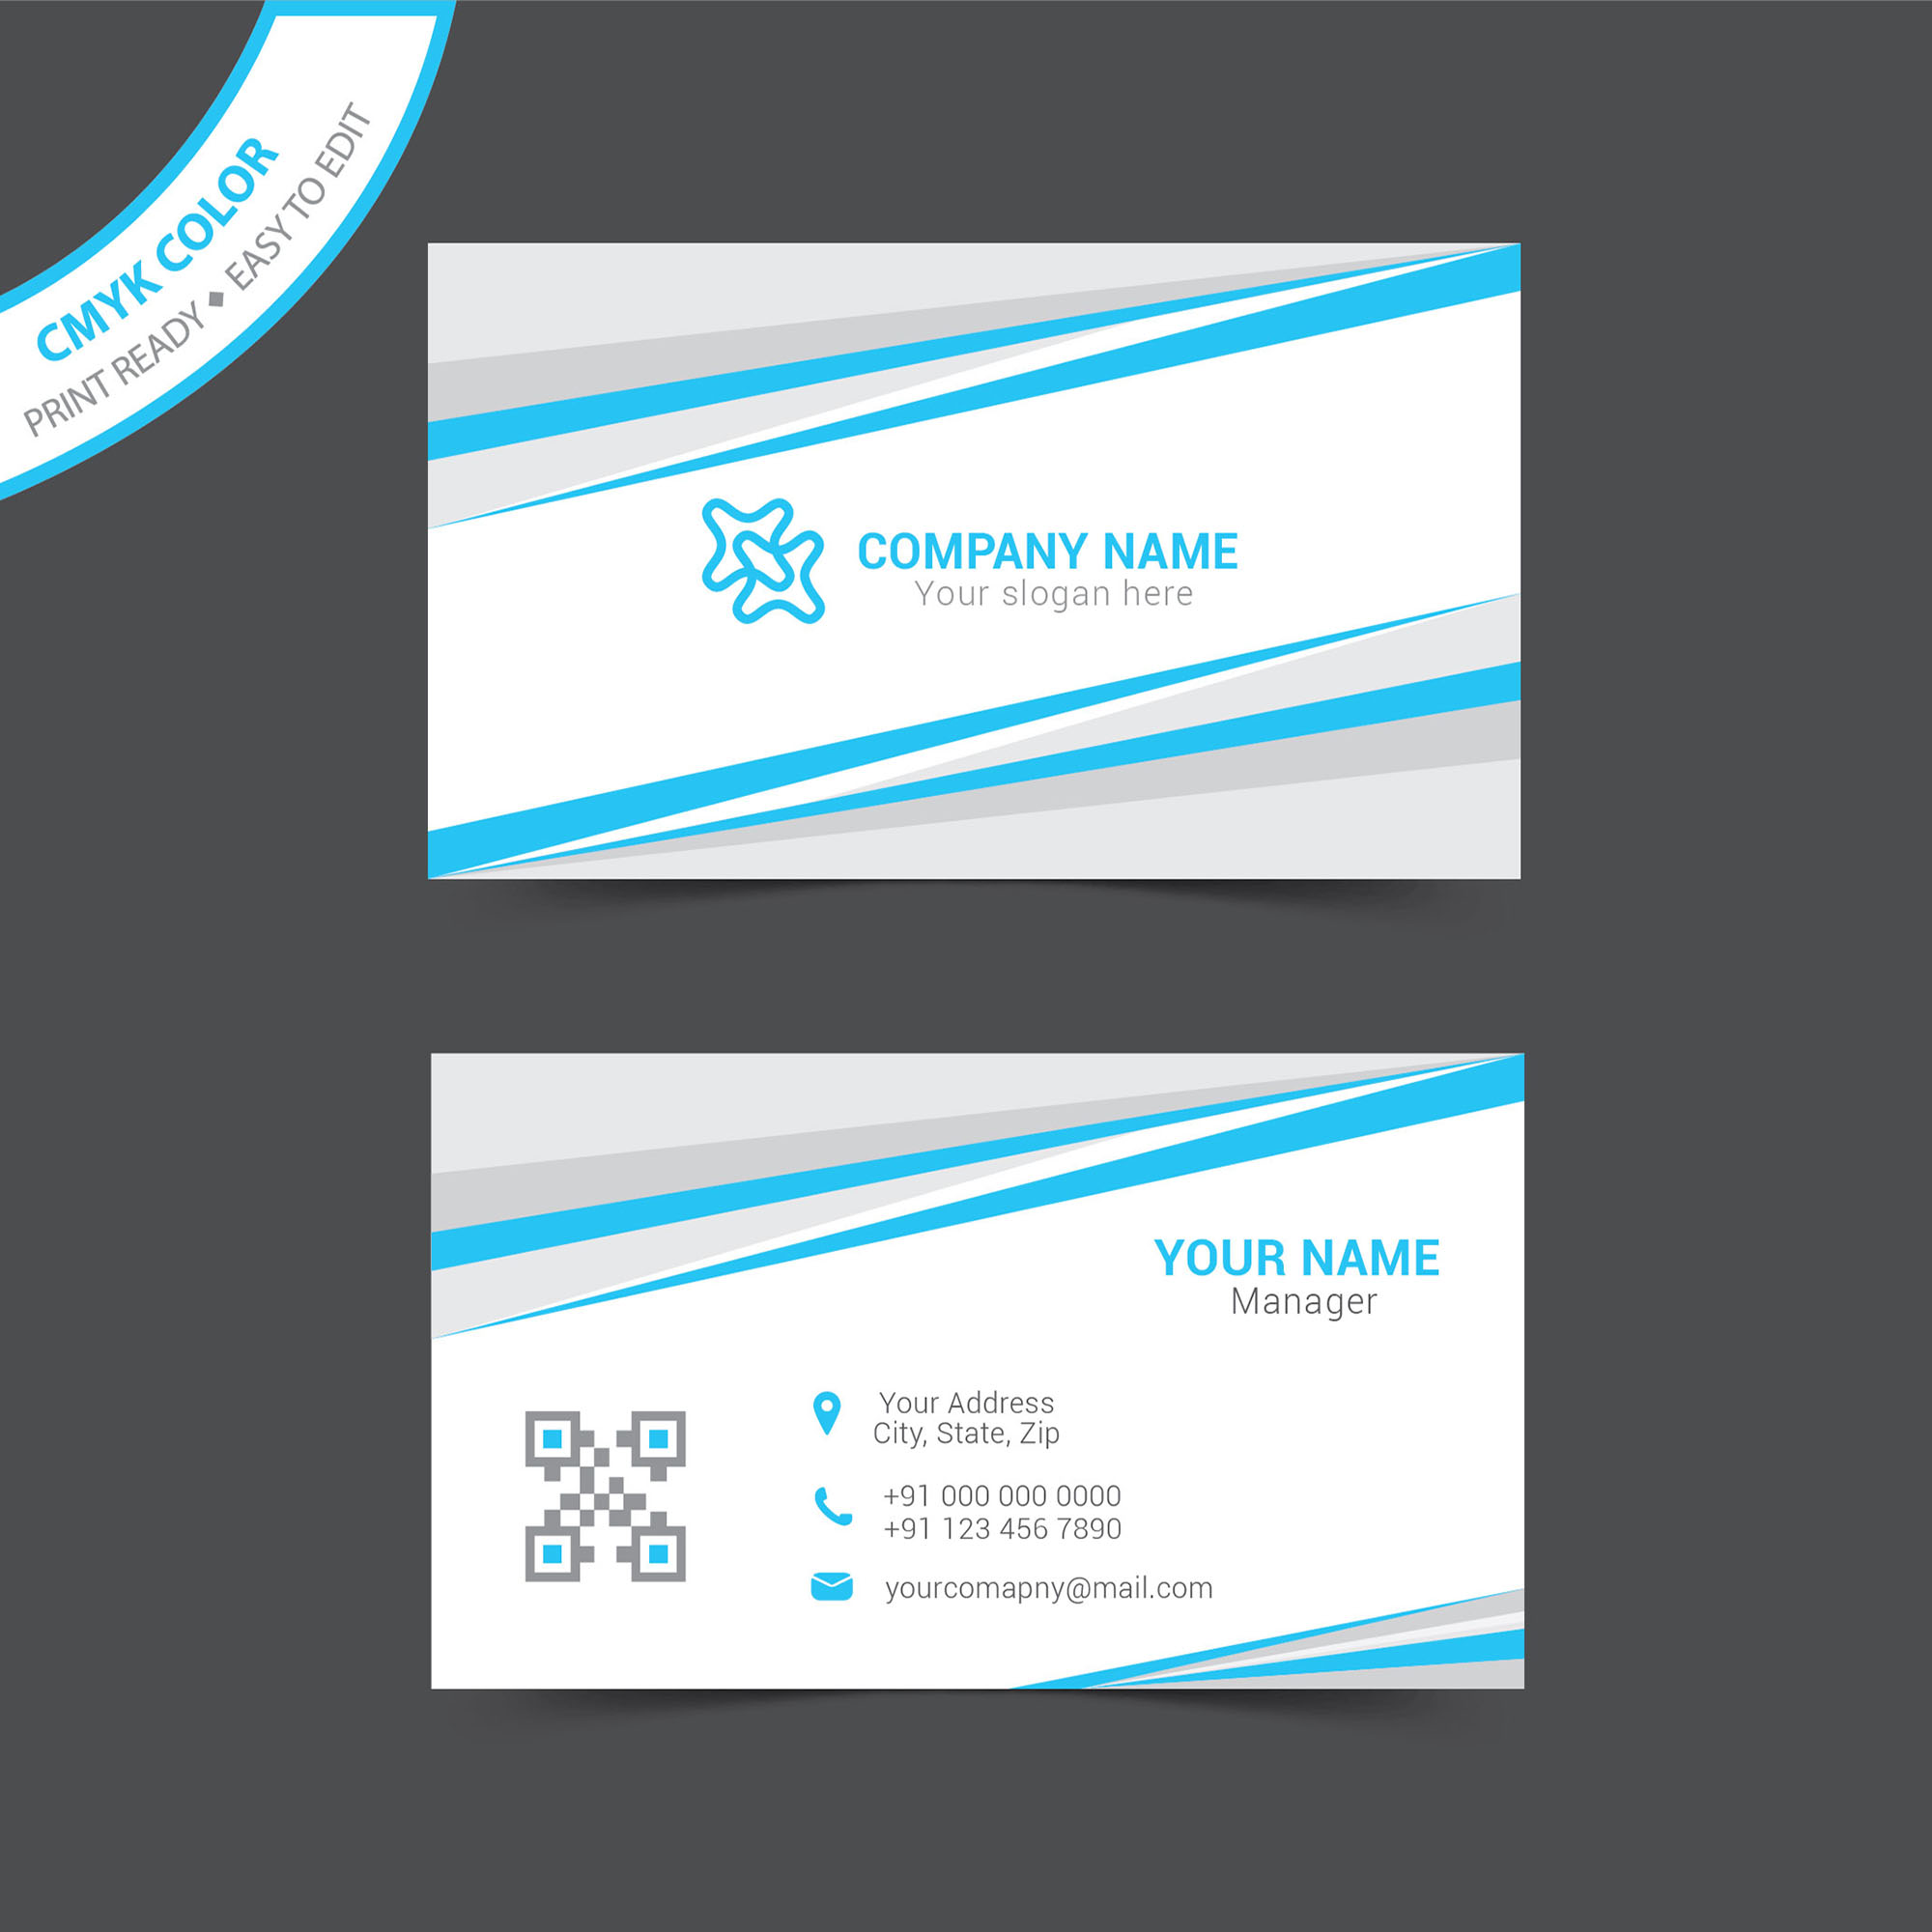 Simple Business Card Template Free Download Wisxicom - Free business card layout template